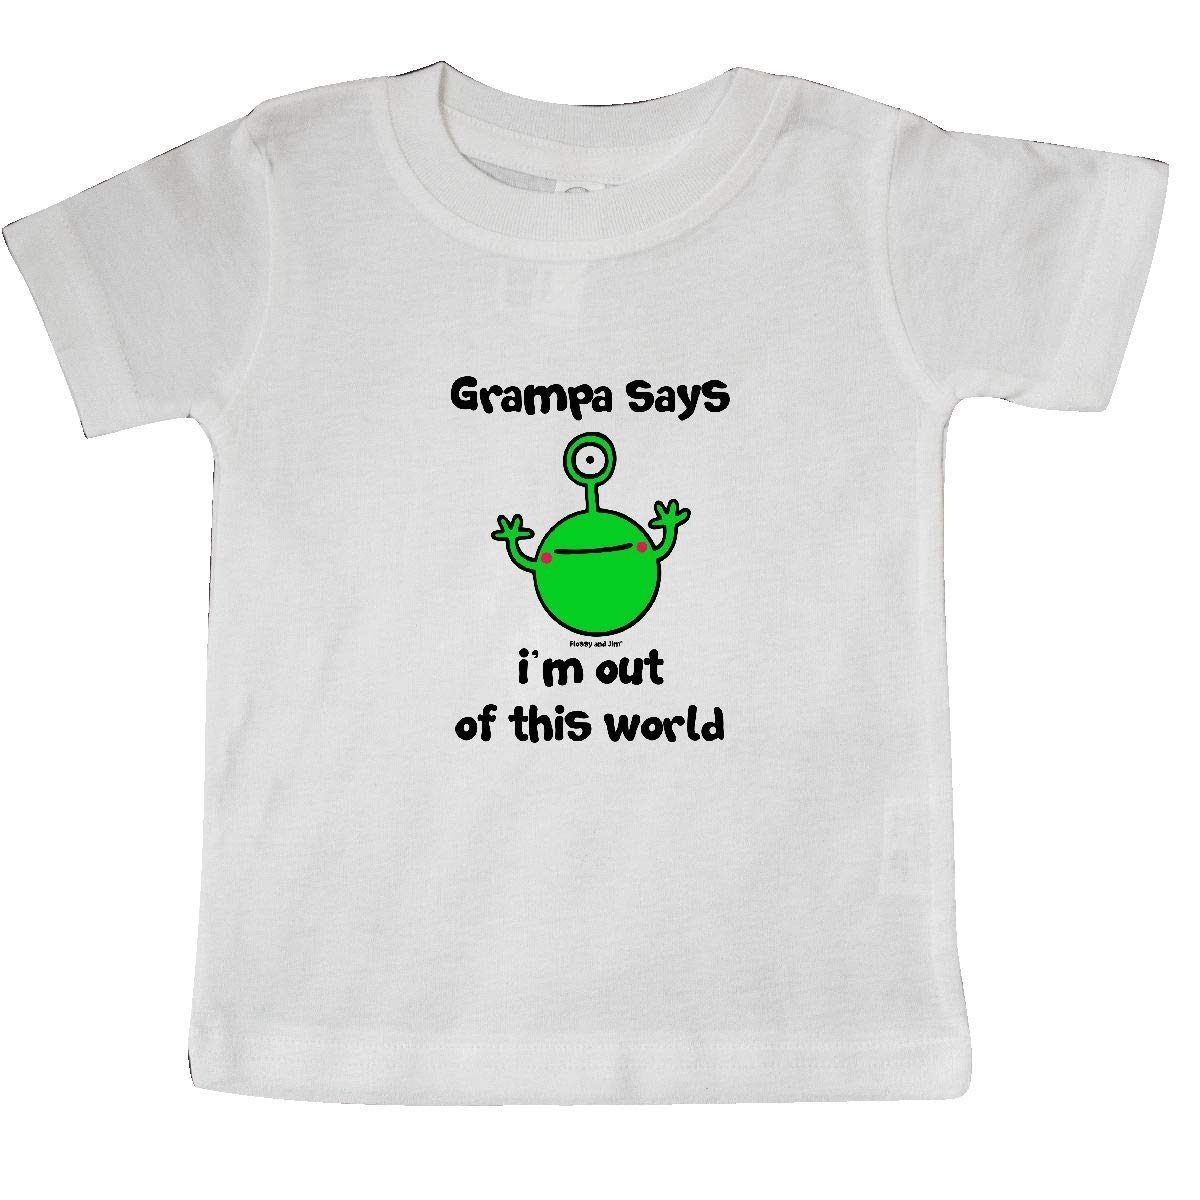 inktastic Grampa Flossy and Jim Out of This World Baby T-Shirt